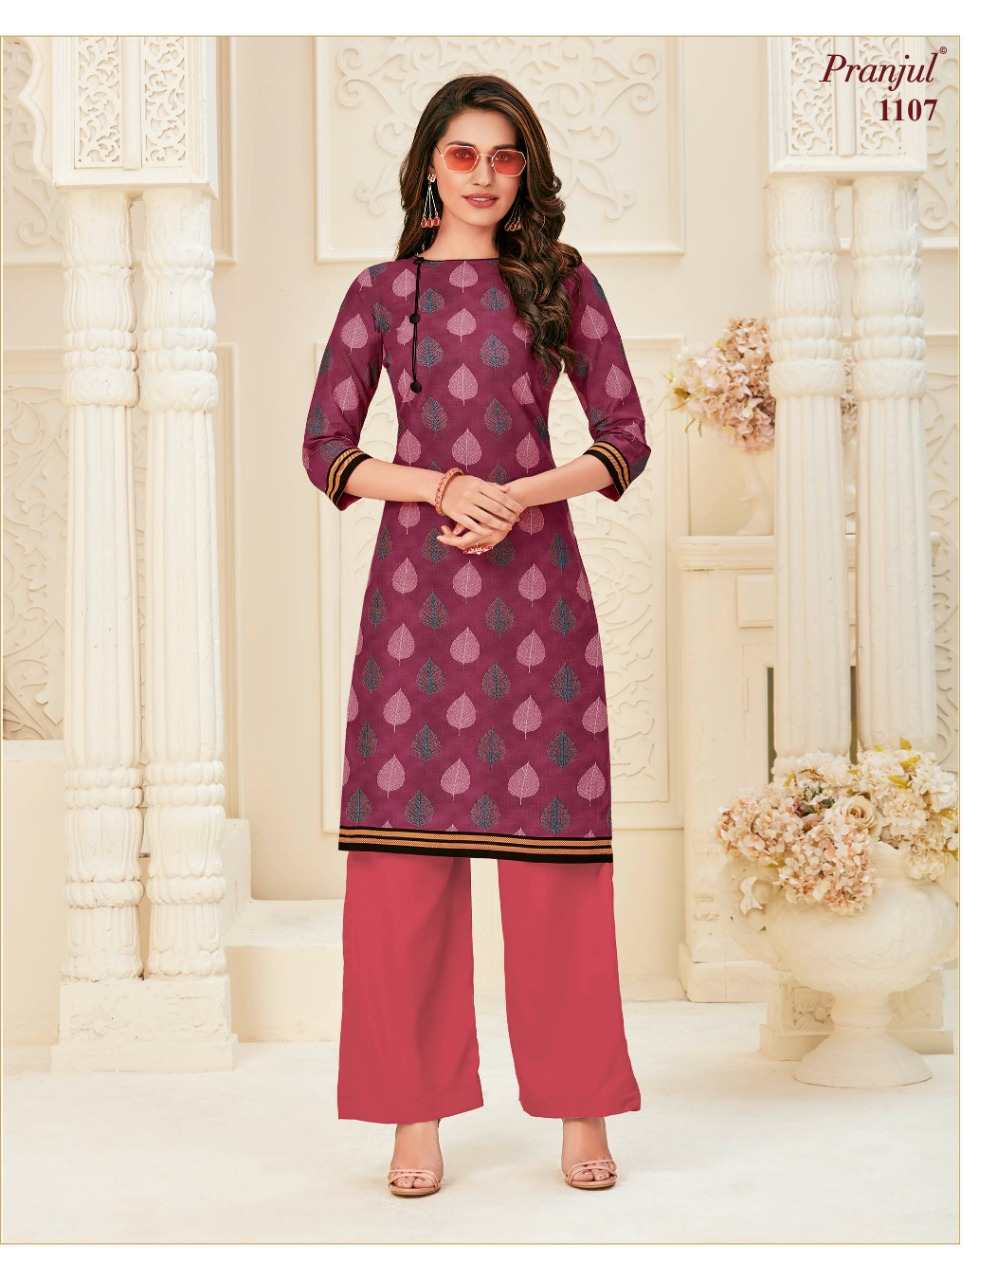 Pranjul Pari Vol 1 Kurti Wholesale Catalog 20 Pcs 14 - Pranjul Pari Vol 1 Kurti Wholesale Catalog 20 Pcs